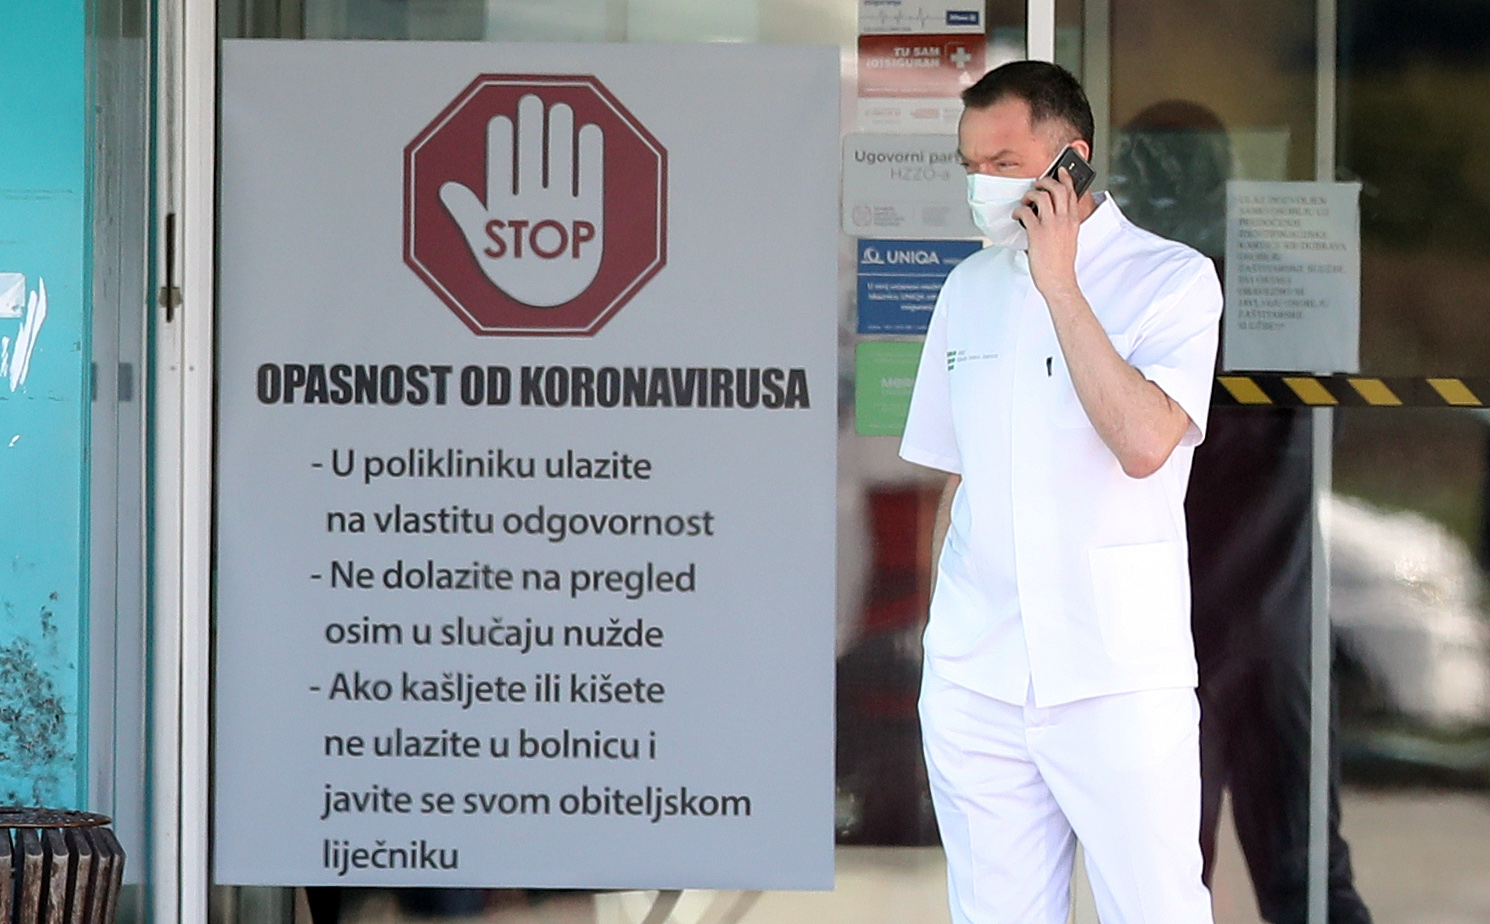 Croatian healthcare system